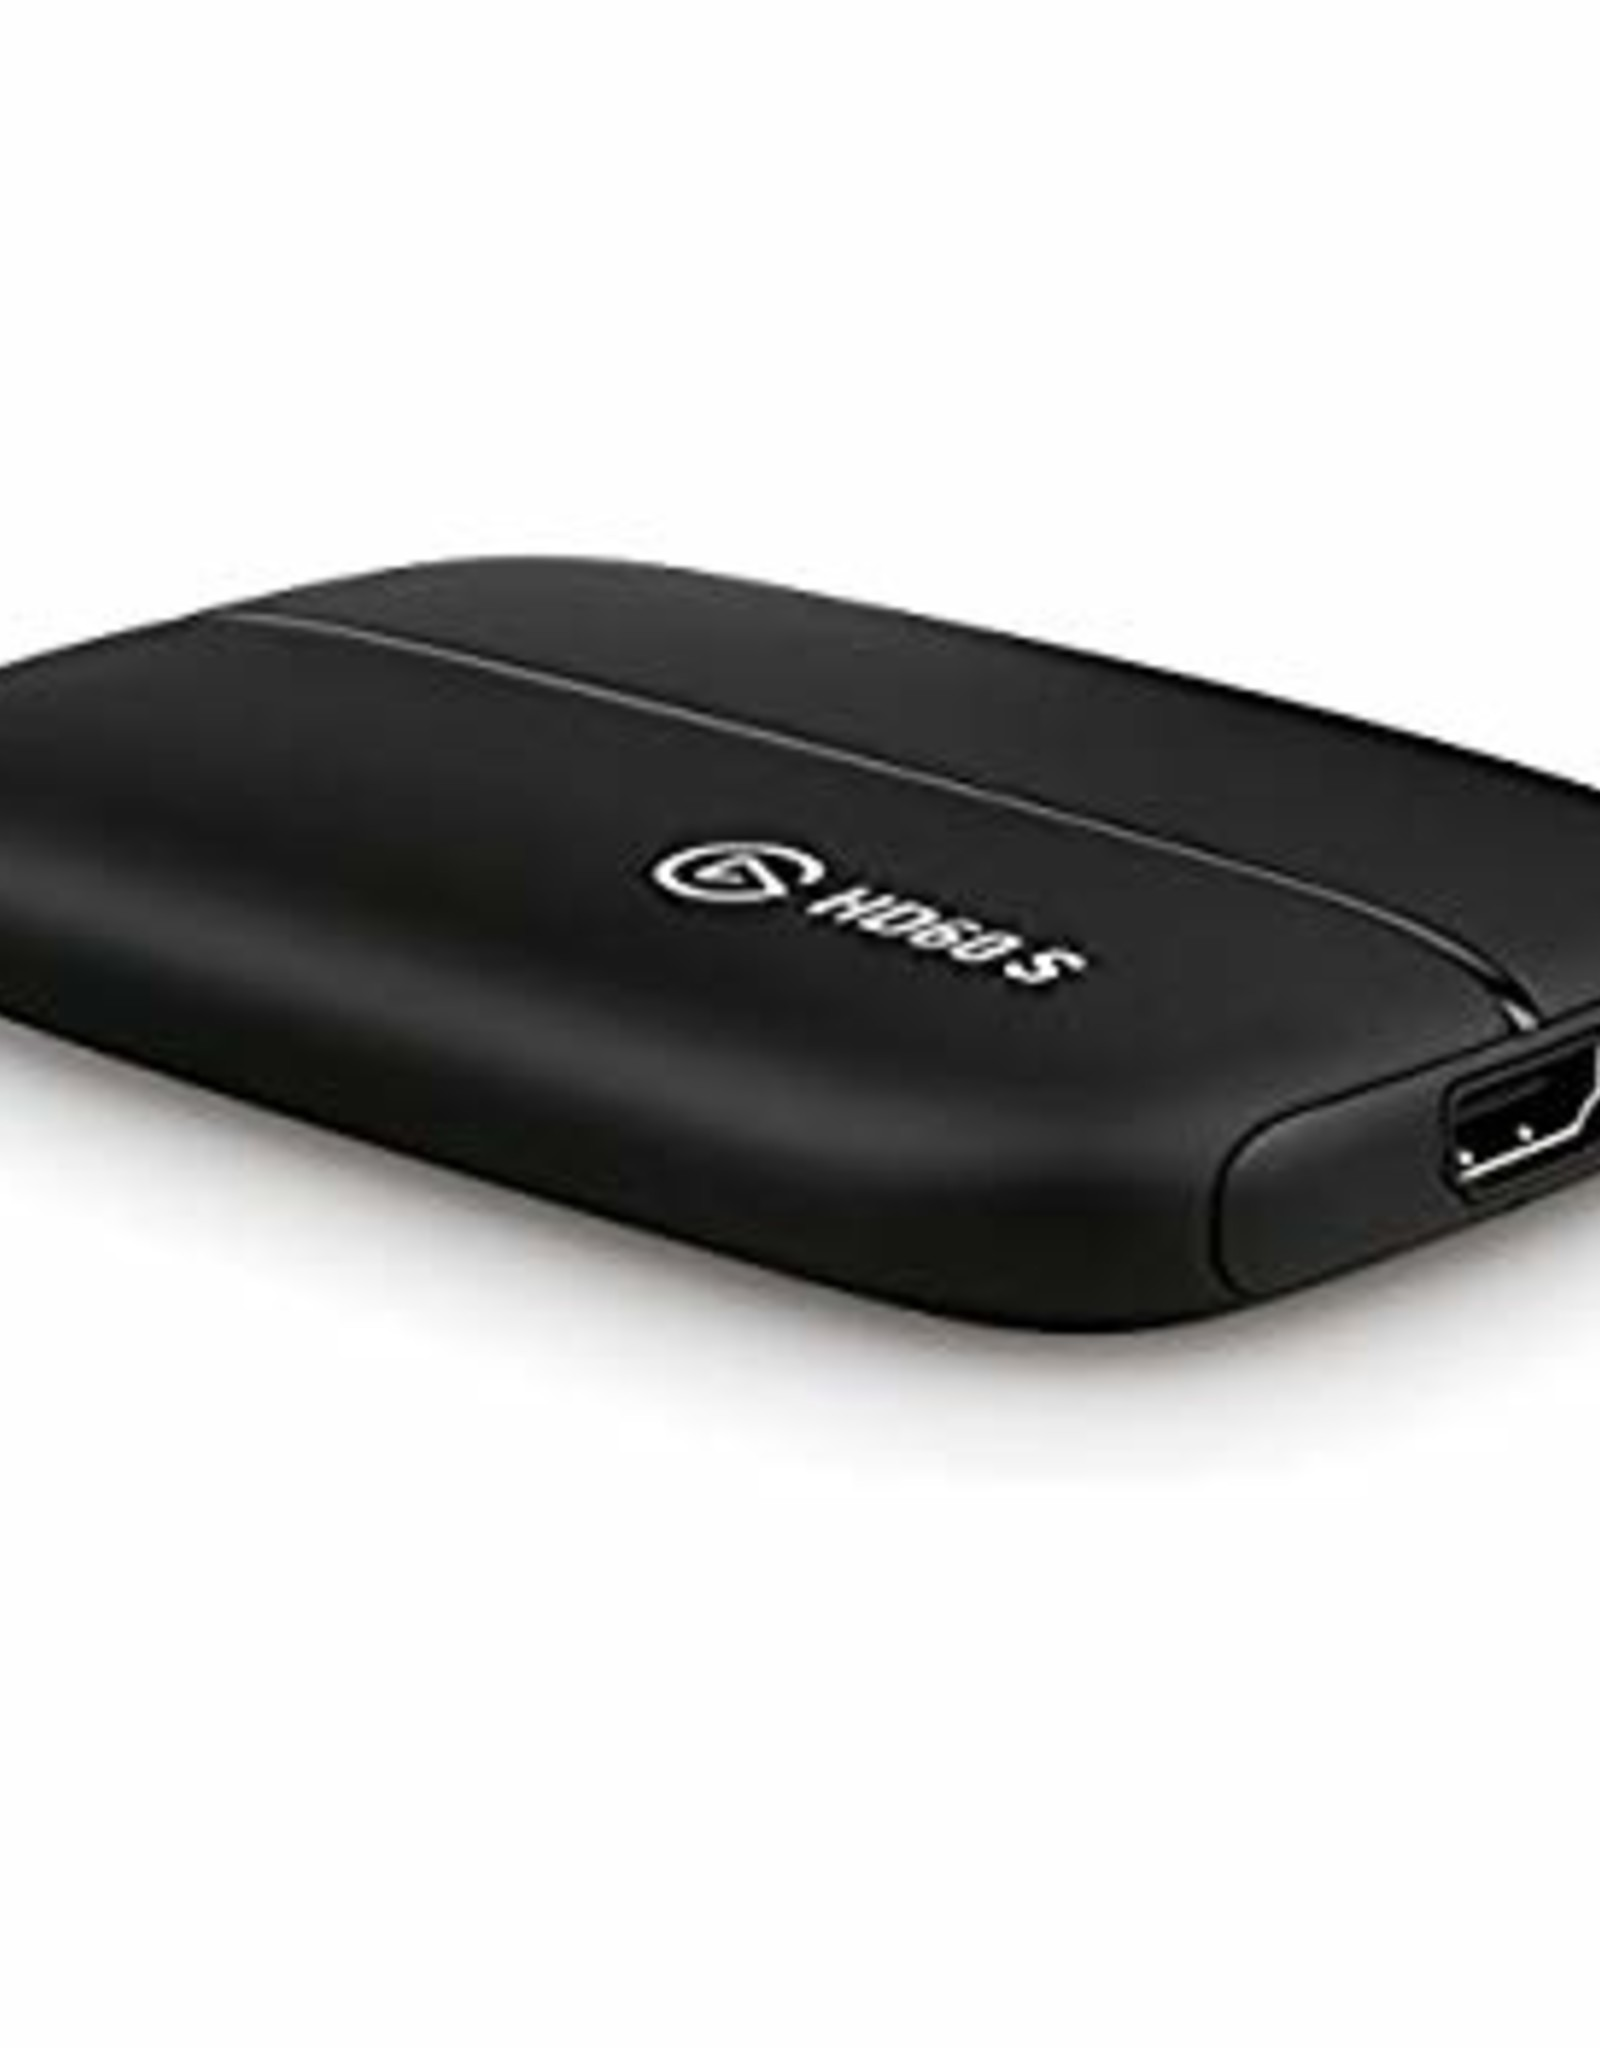 Elgato HD60 S Capture Card For Streaming Gameplay